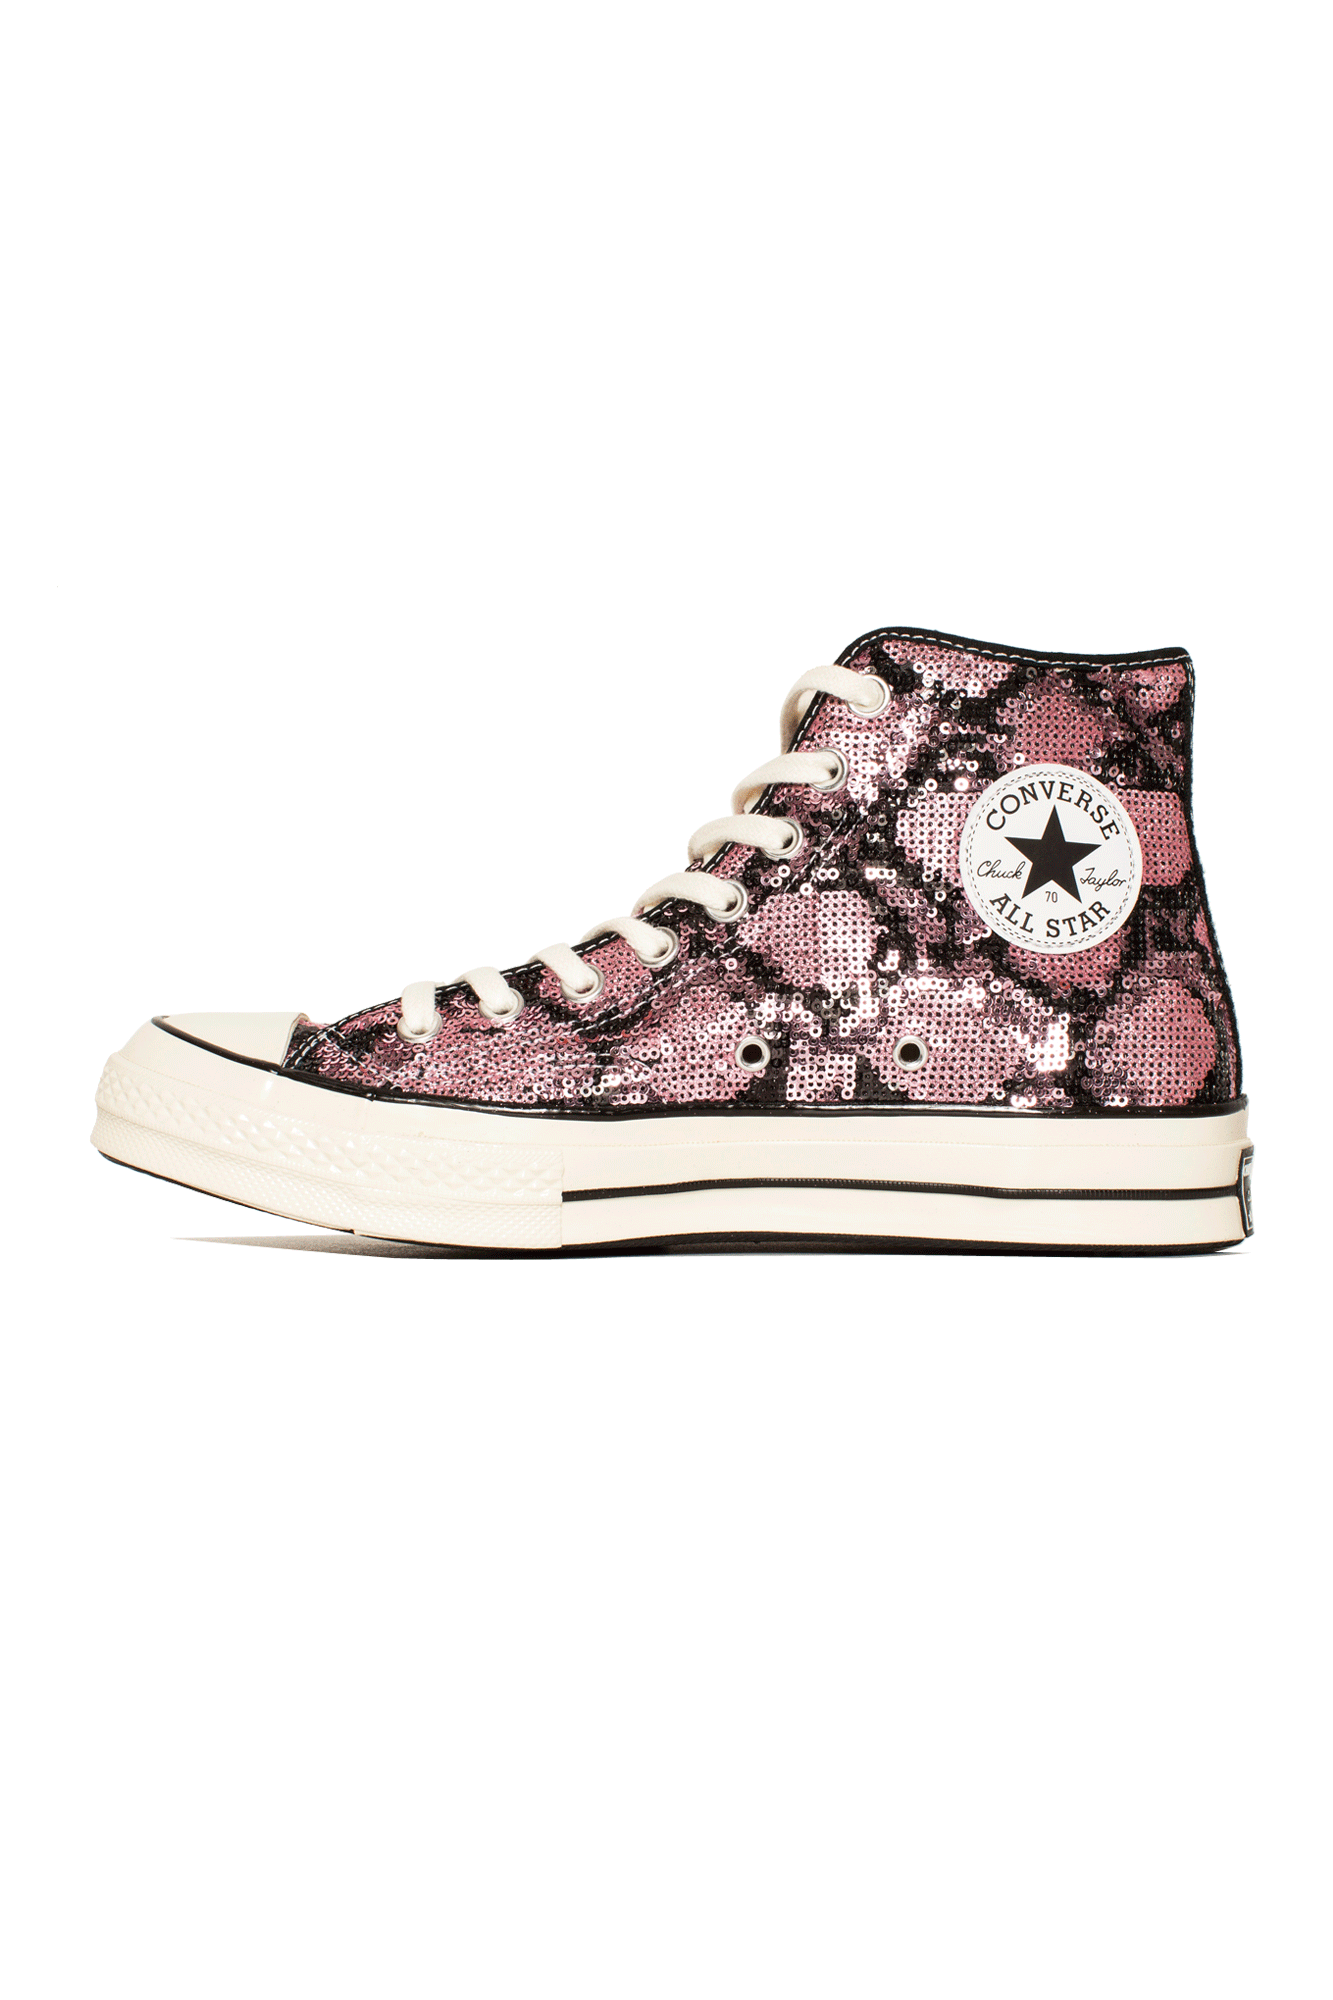 PRO LEATHER MID X CONVERSE SNAKE